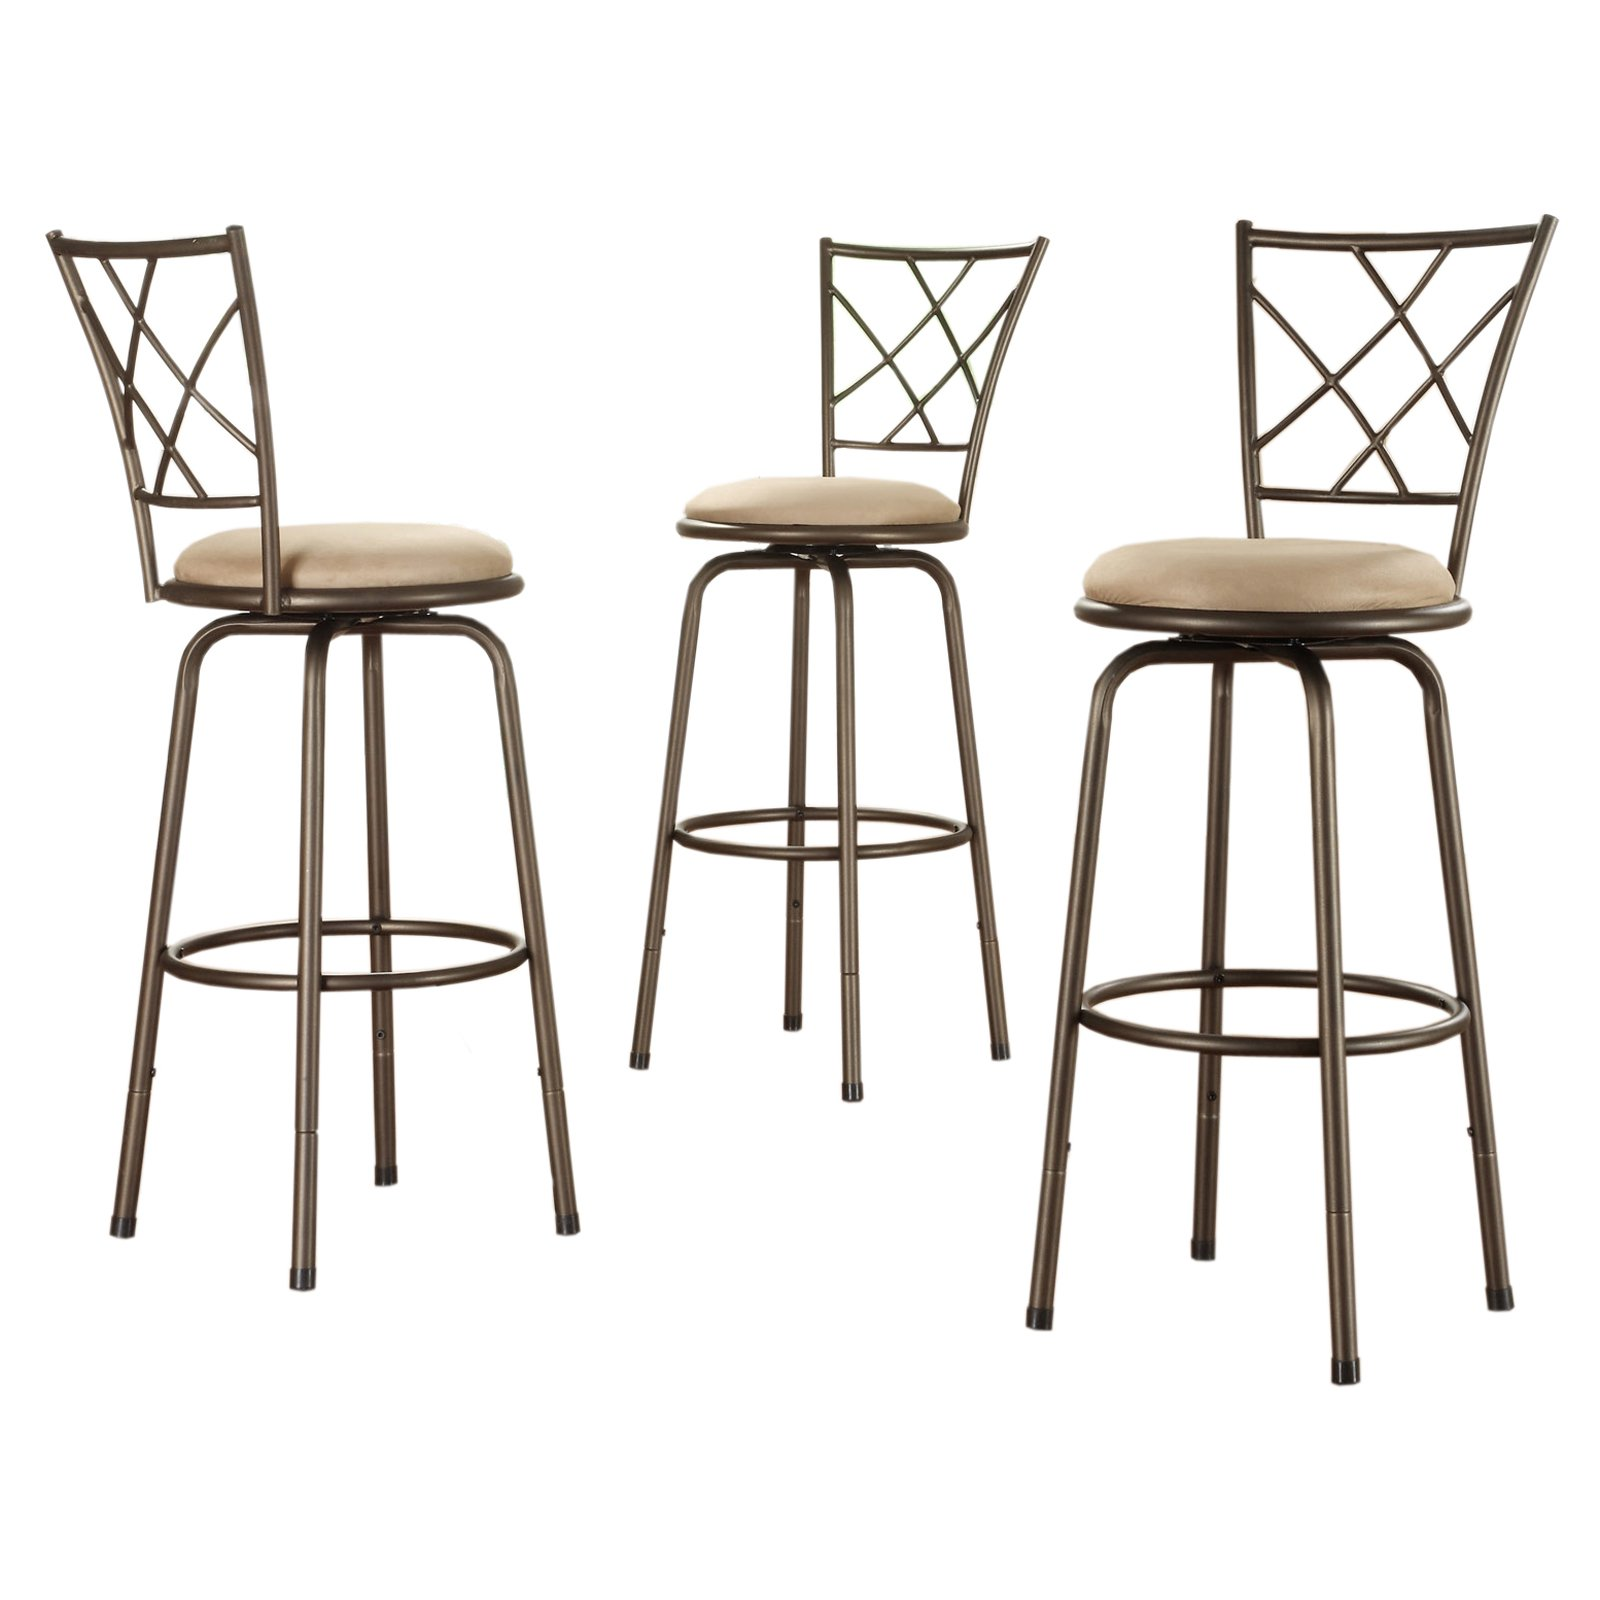 Weston Home X Back Adjustable Kitchen Bar Stools 24 Quot To